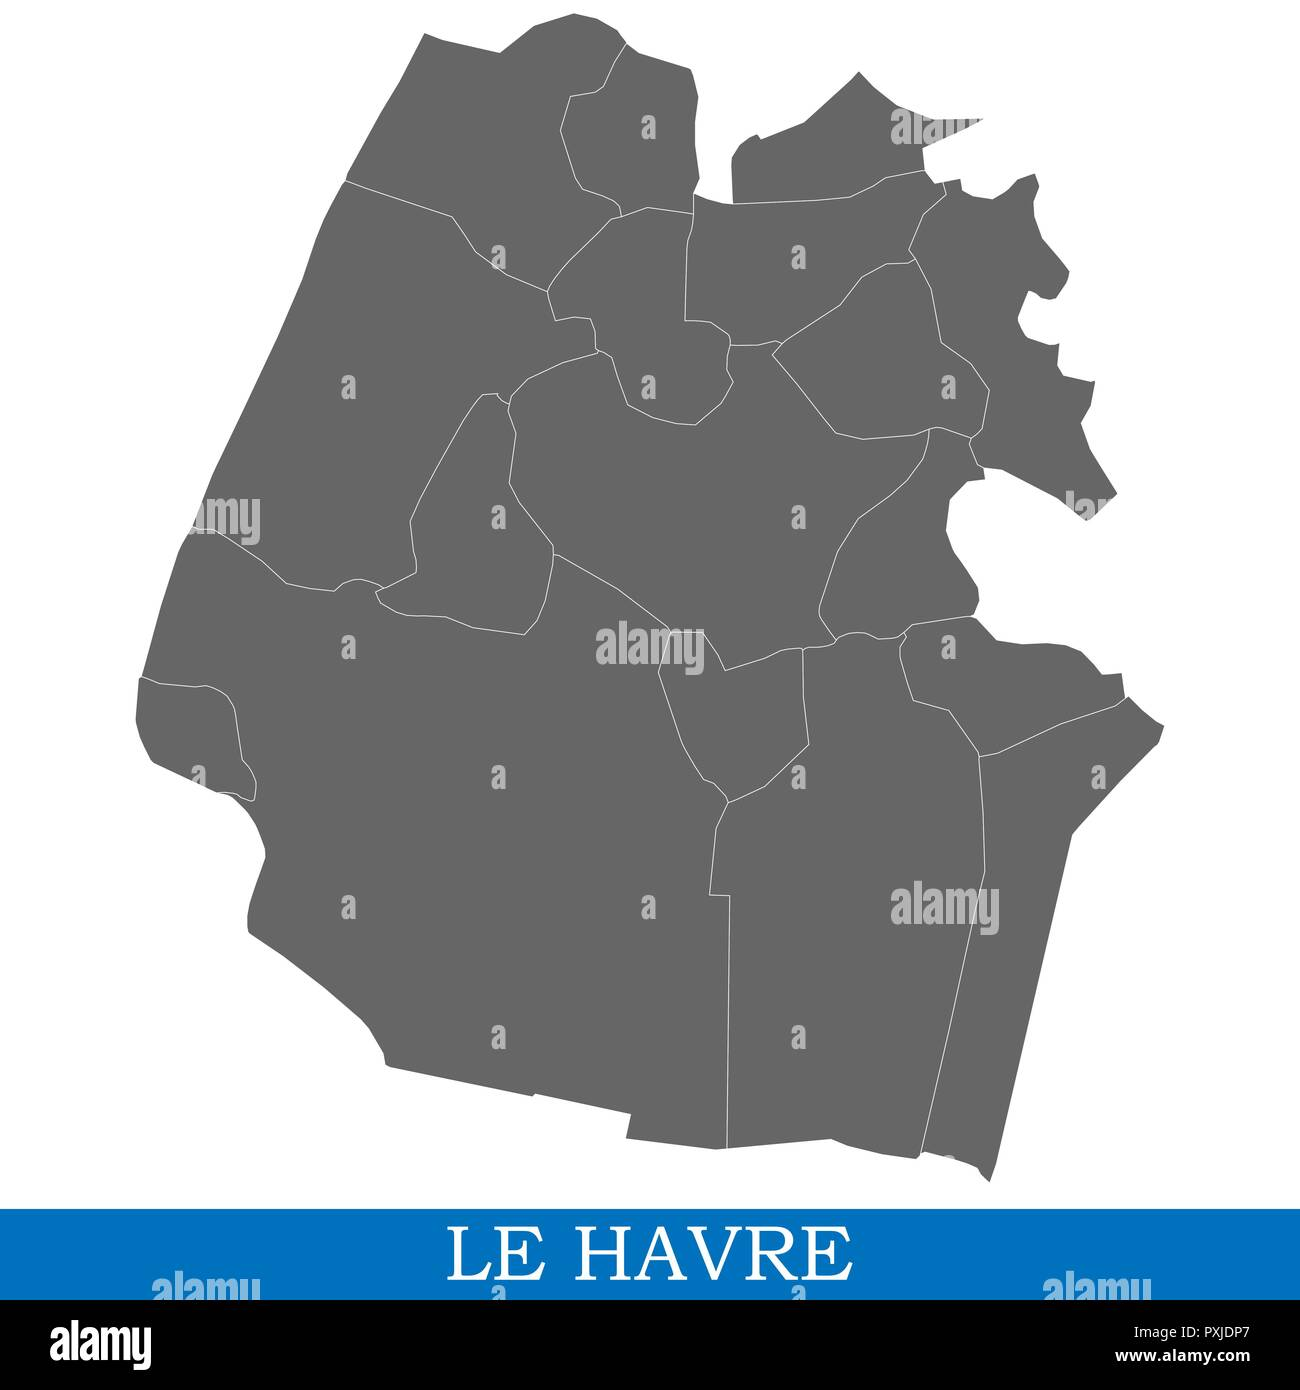 High Quality Map Of Le Havre Is A City Of France With Borders Of